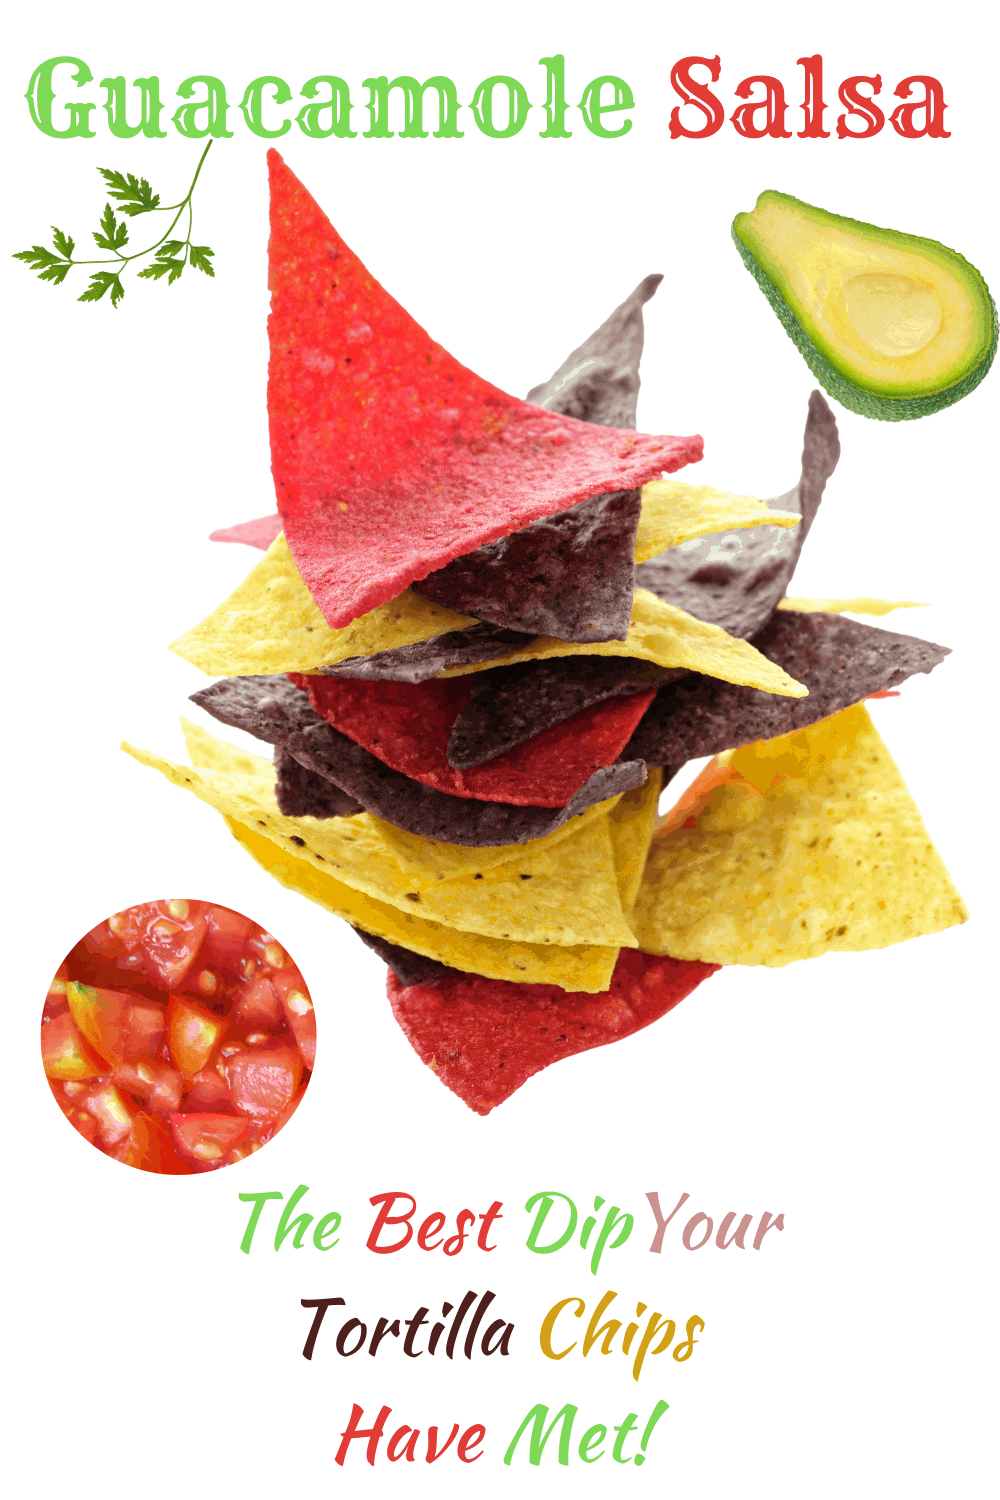 chips and ingredients for guacamole